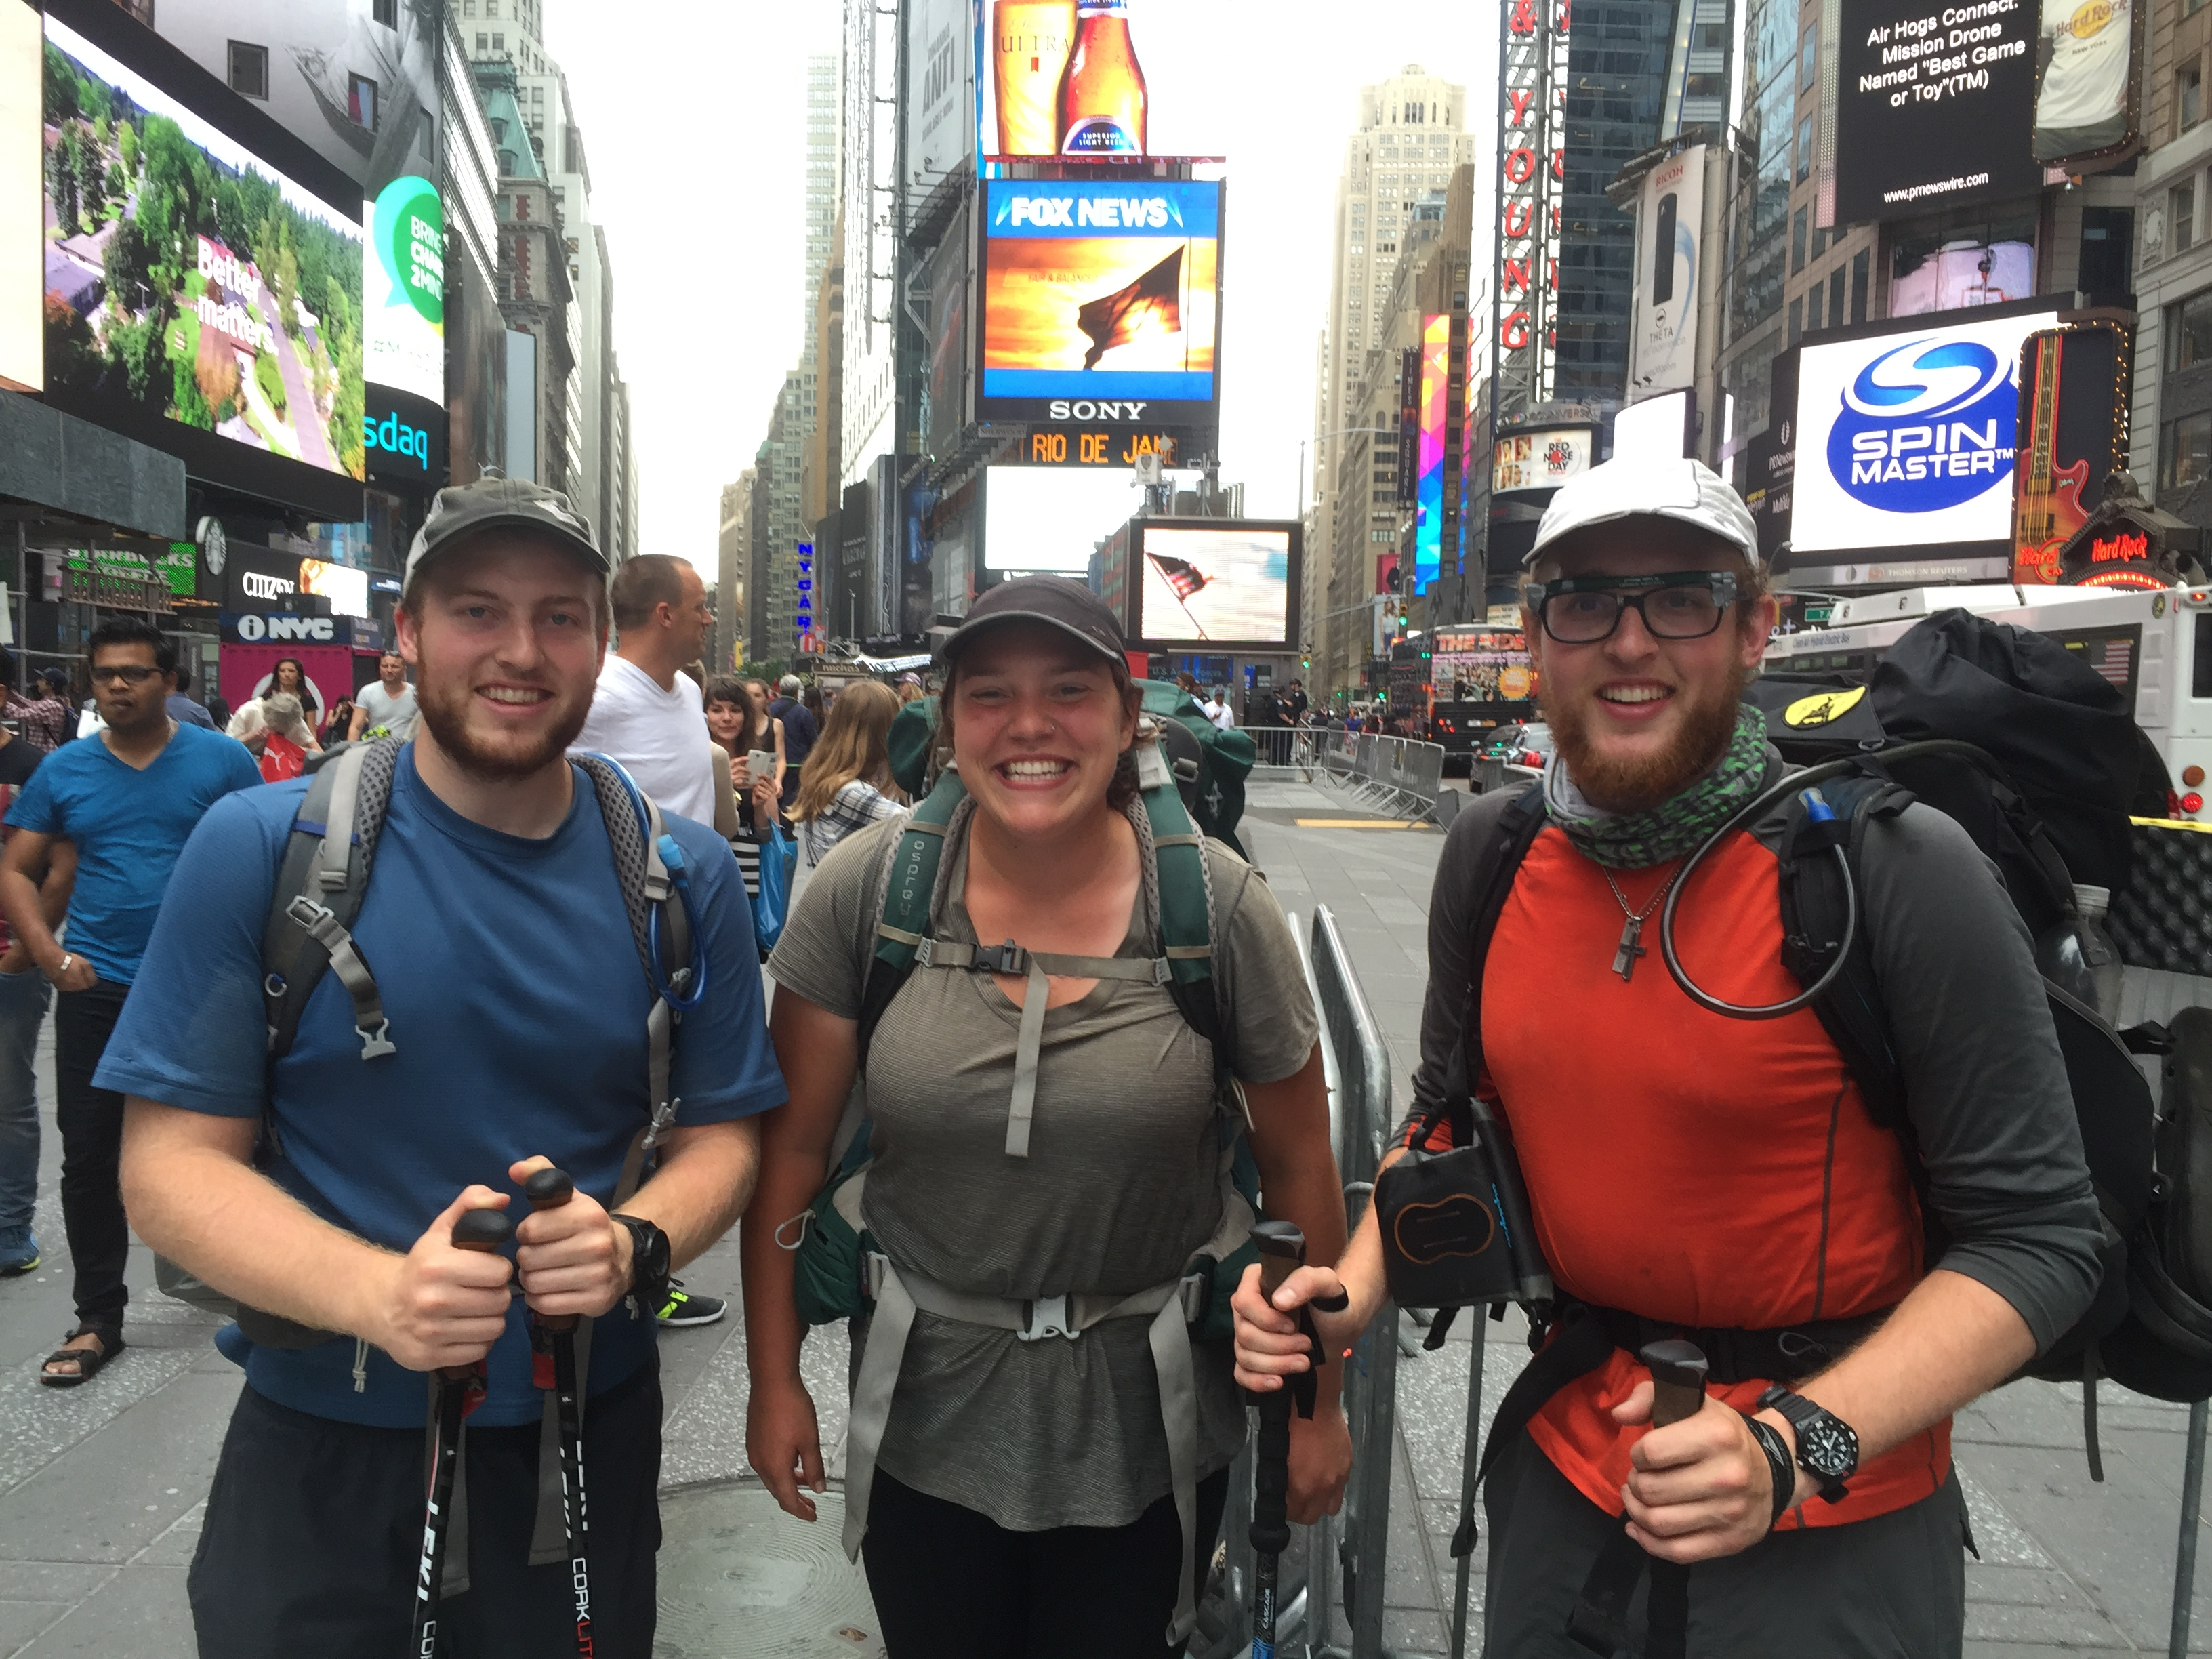 Hikers in NYC - not the strangest thing you'll see